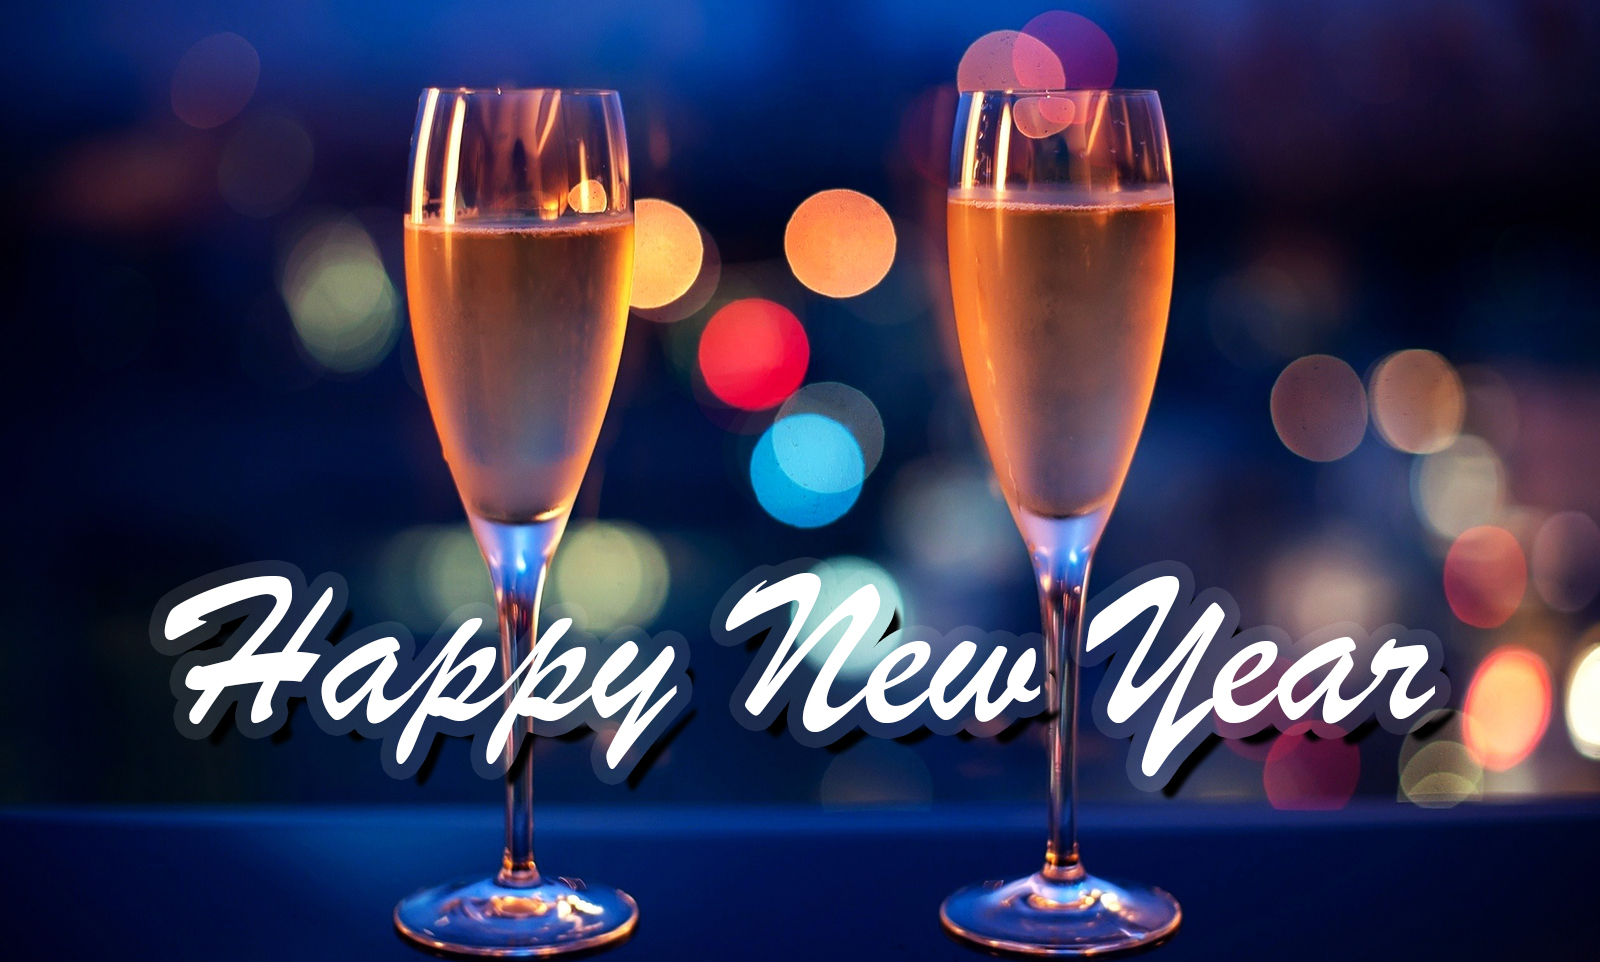 New Years Eve 2017 Wallpaper Hd Wines Holiday Island 117834